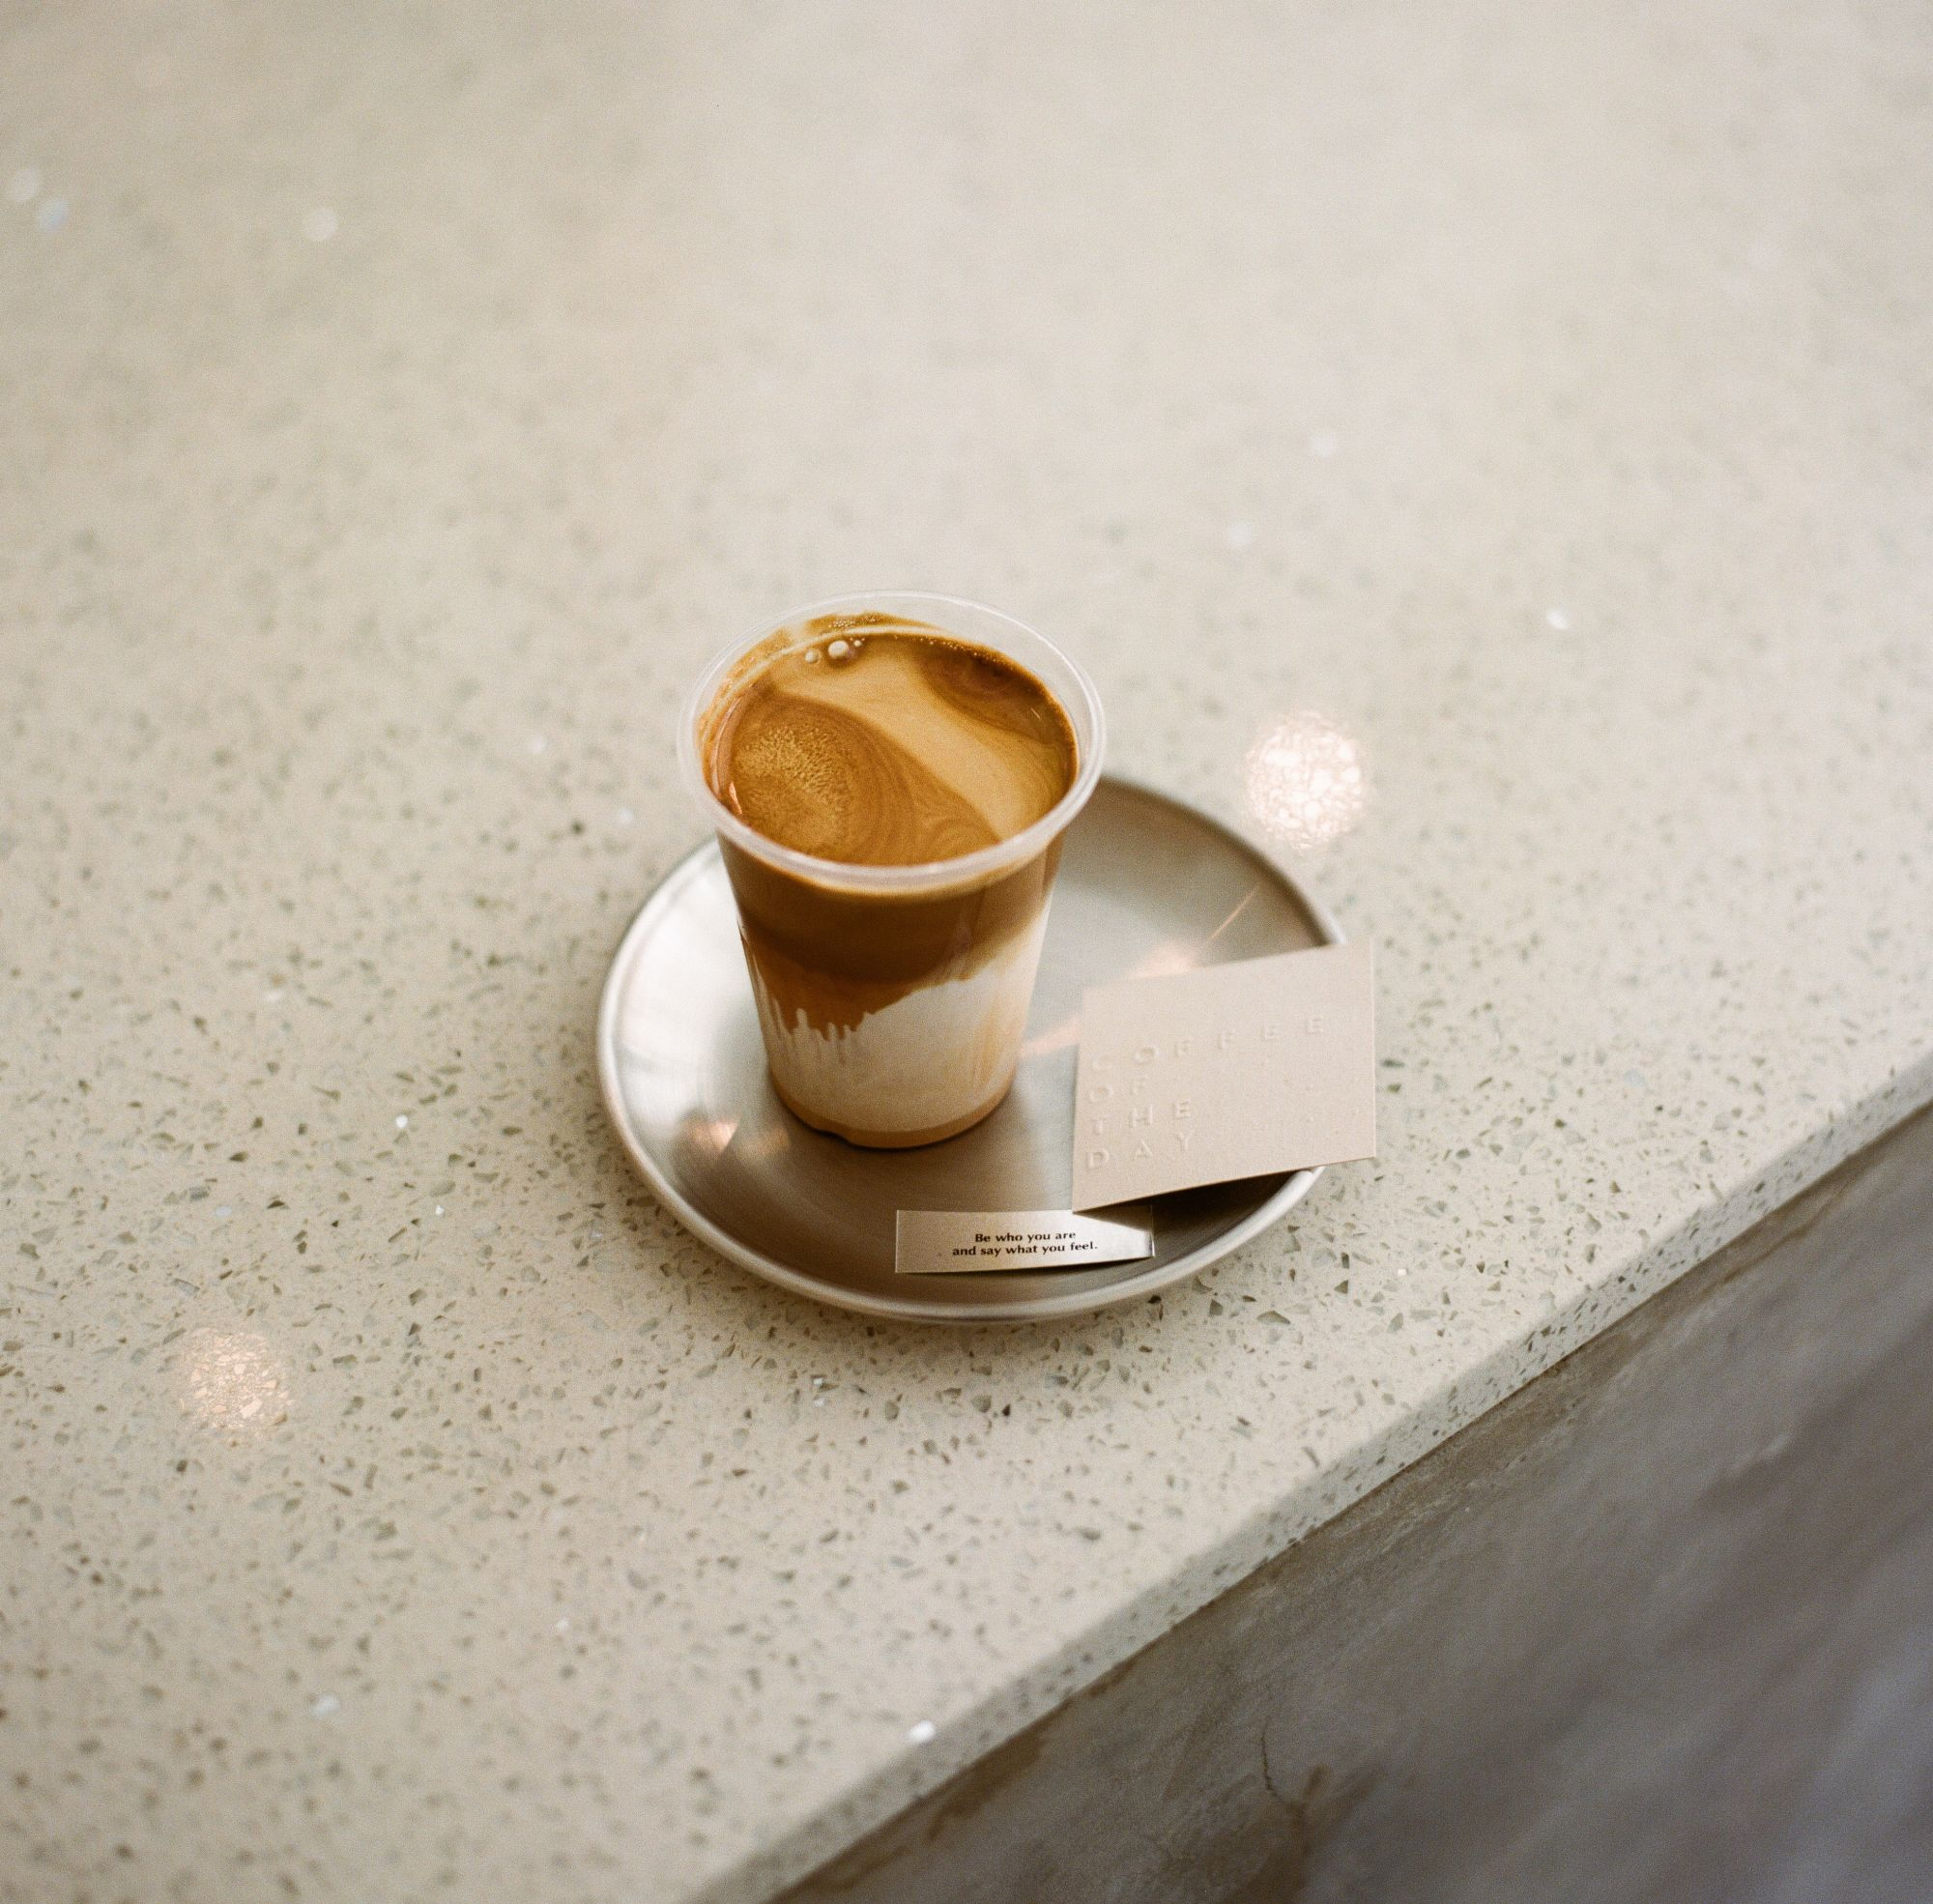 What Is 'Dirty Coffee' And Where Can I Get Some In Bangkok?